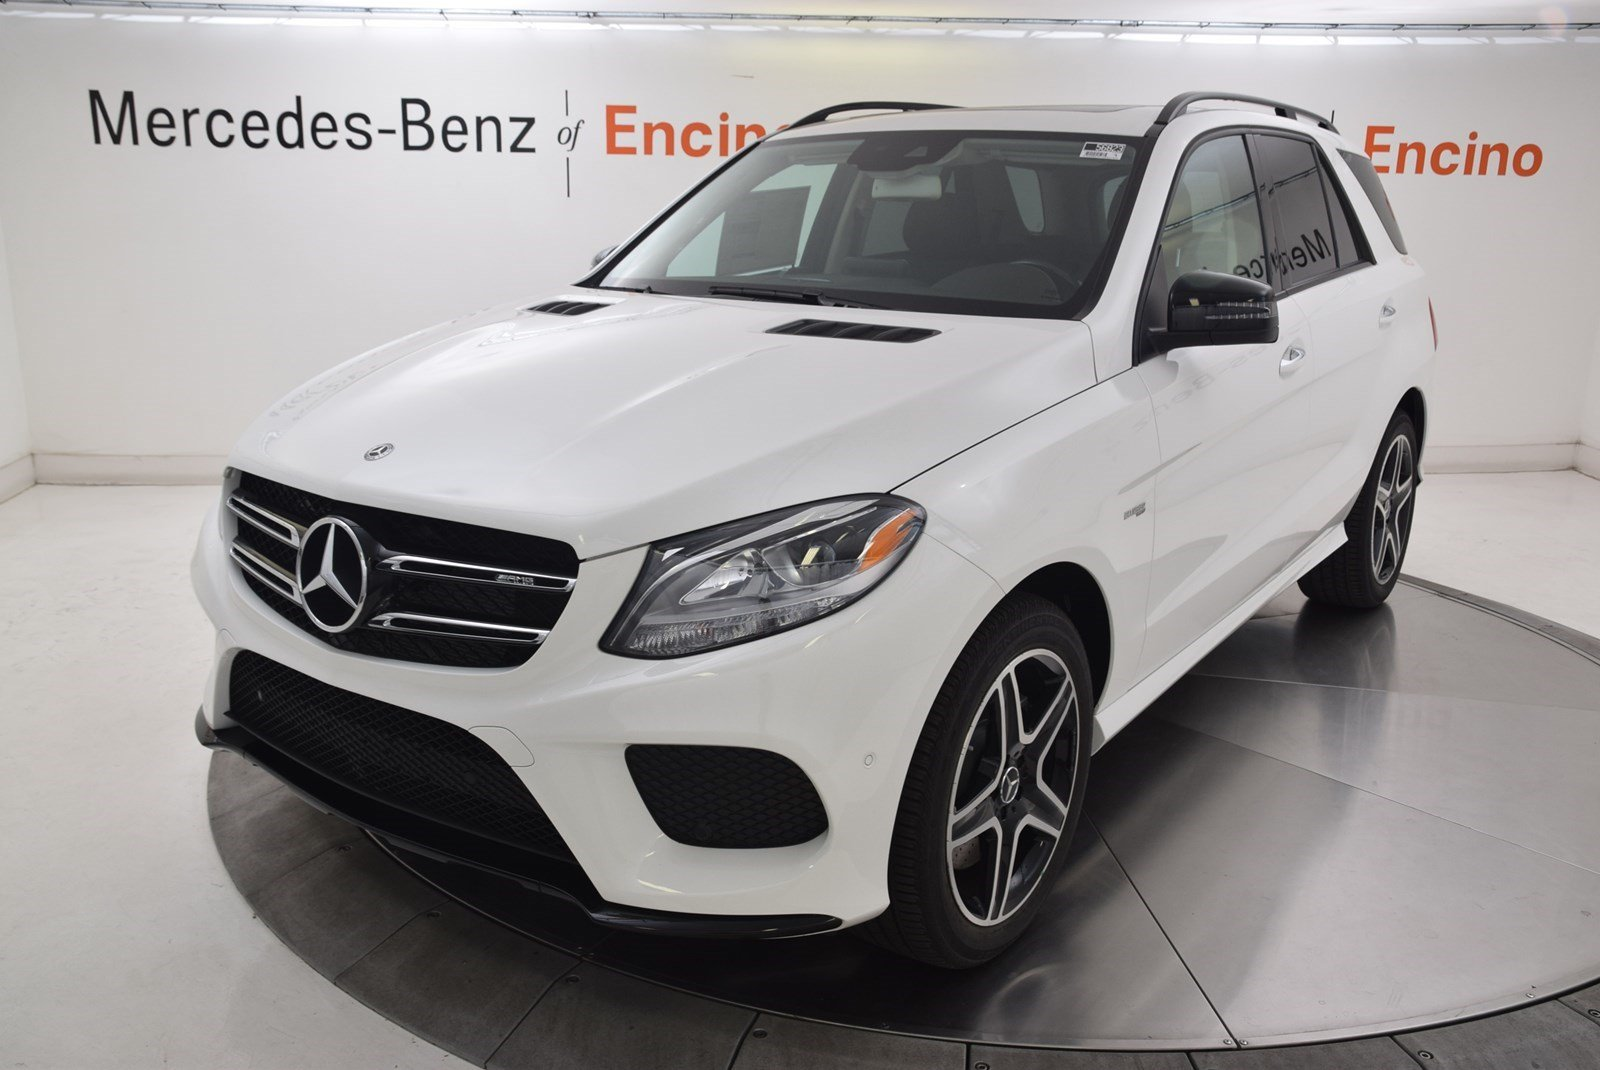 New 2018 Mercedes Benz GLE AMG GLE 43 SUV SUV in Encino